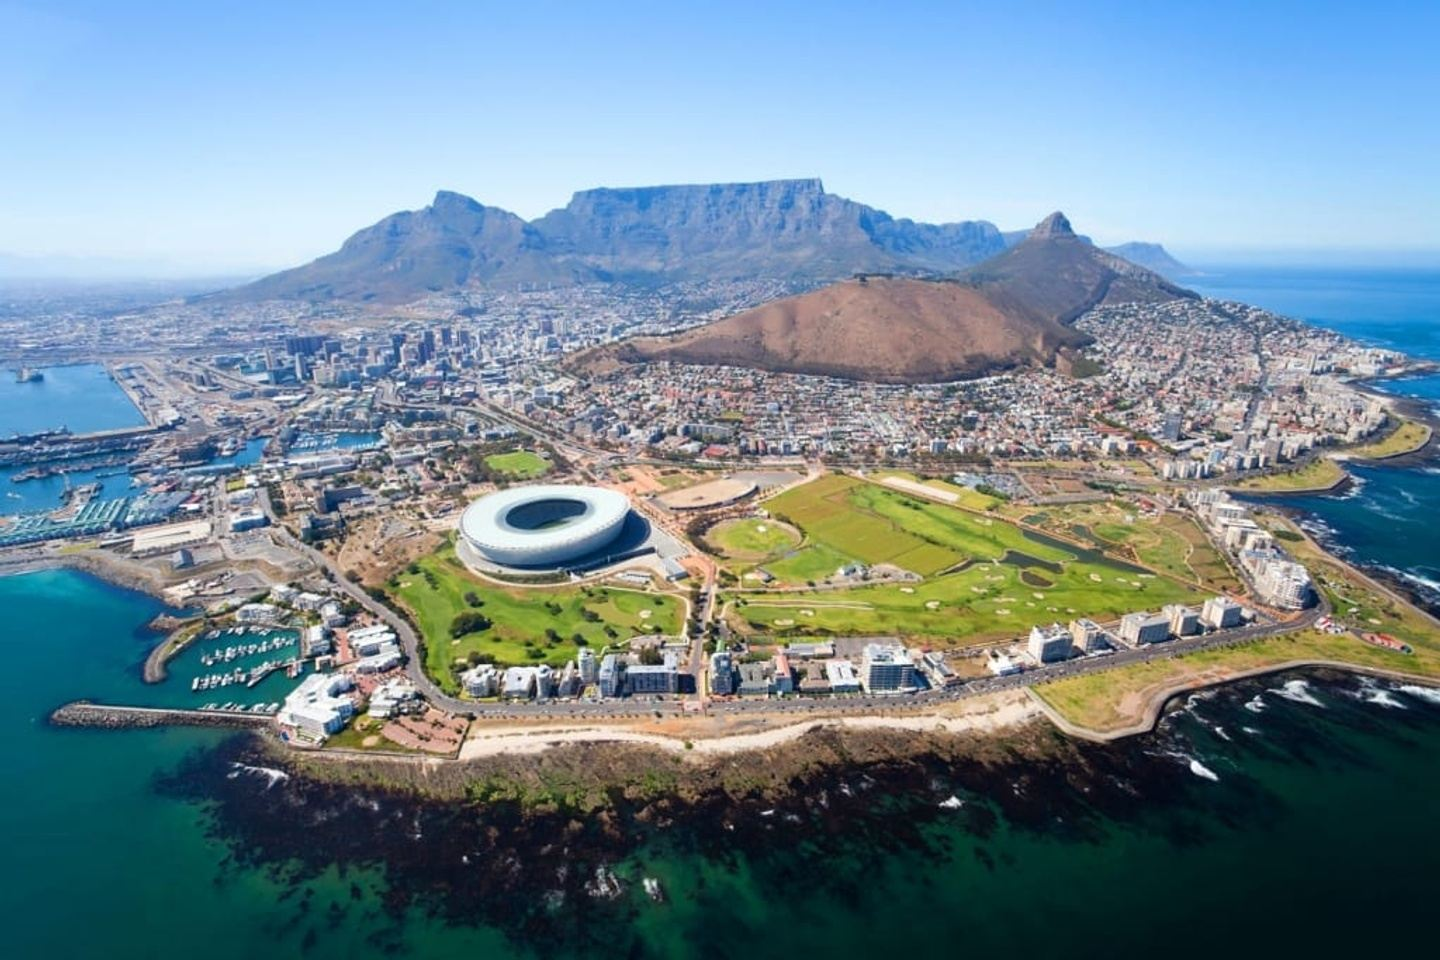 Cape Town, South Africa - jETBlack Travel Group